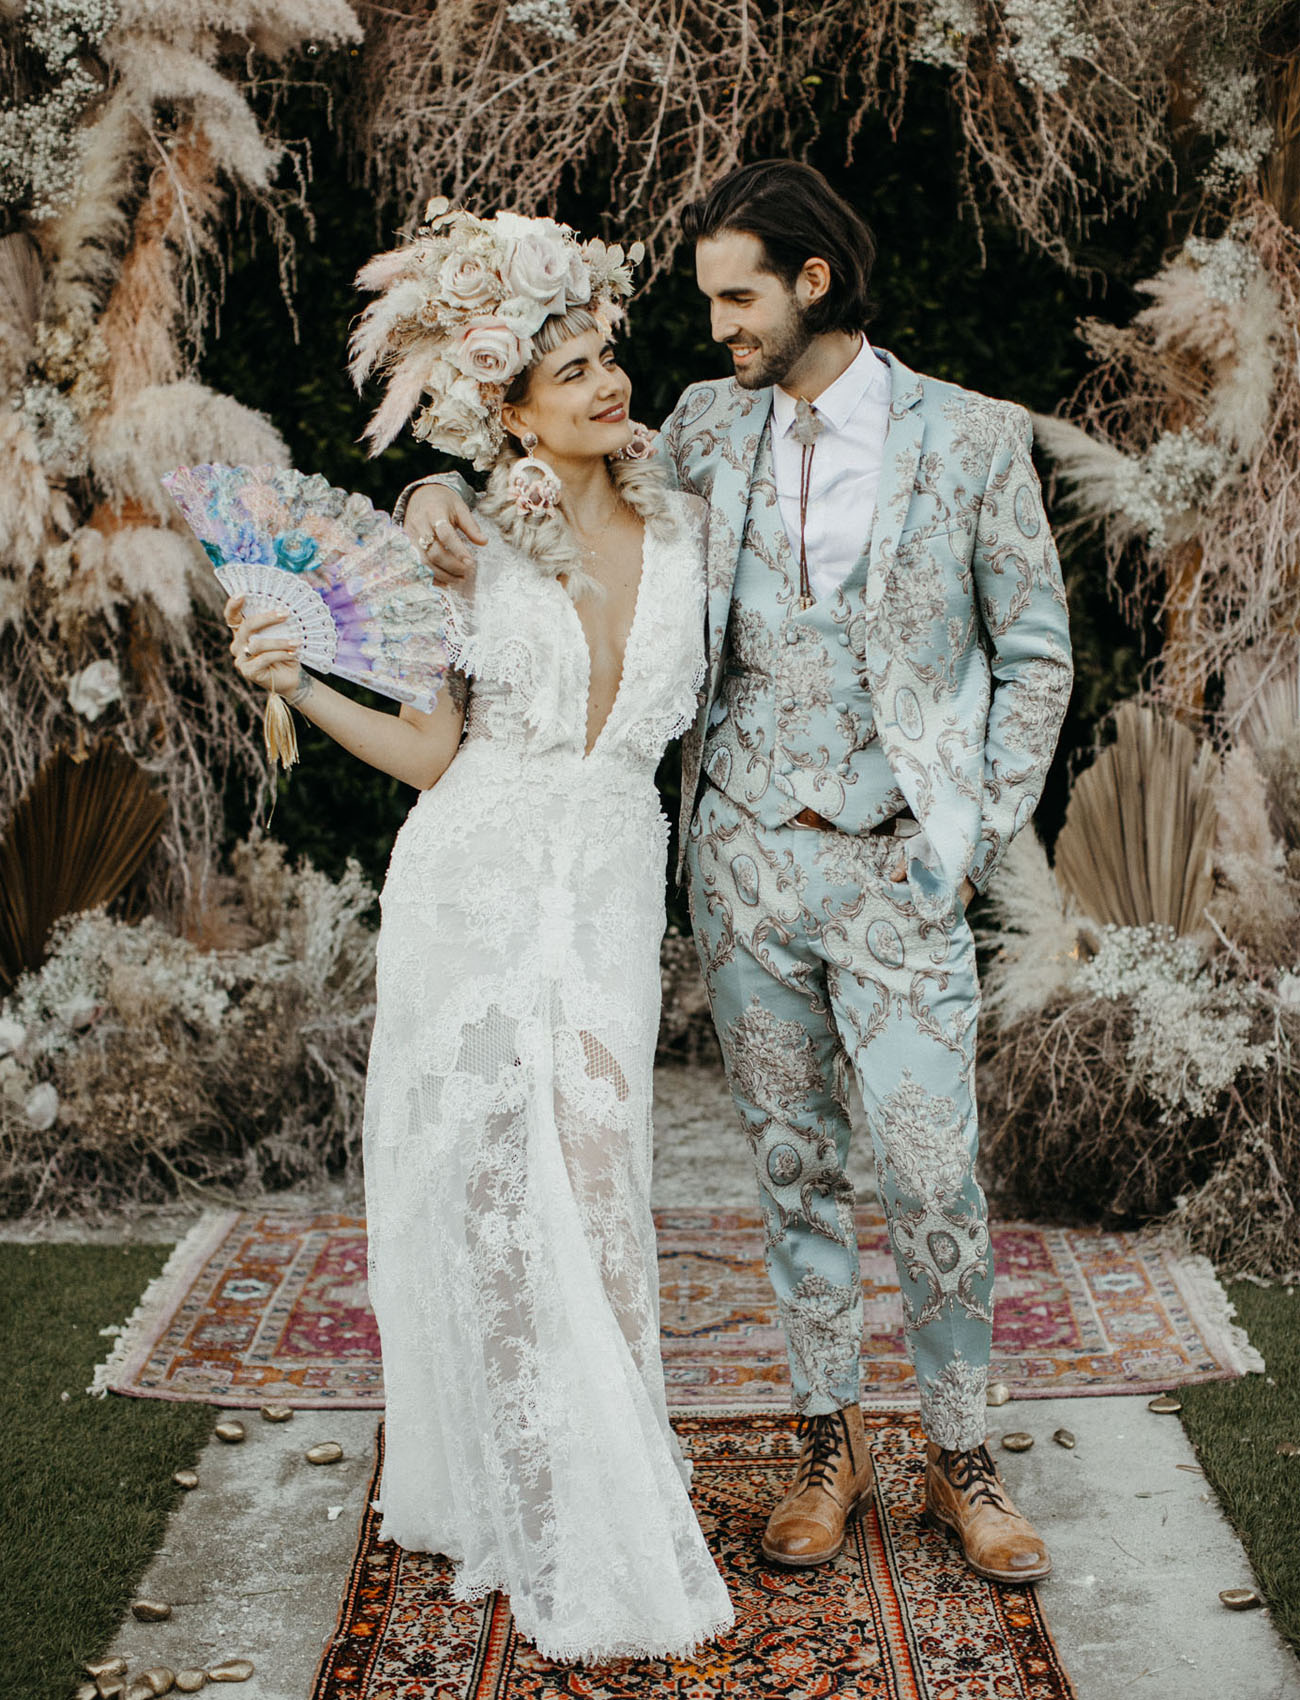 For the reception the bride was wearing a lace plunging neckline wedding gown and the groom was rocking a mint printed three piece suit